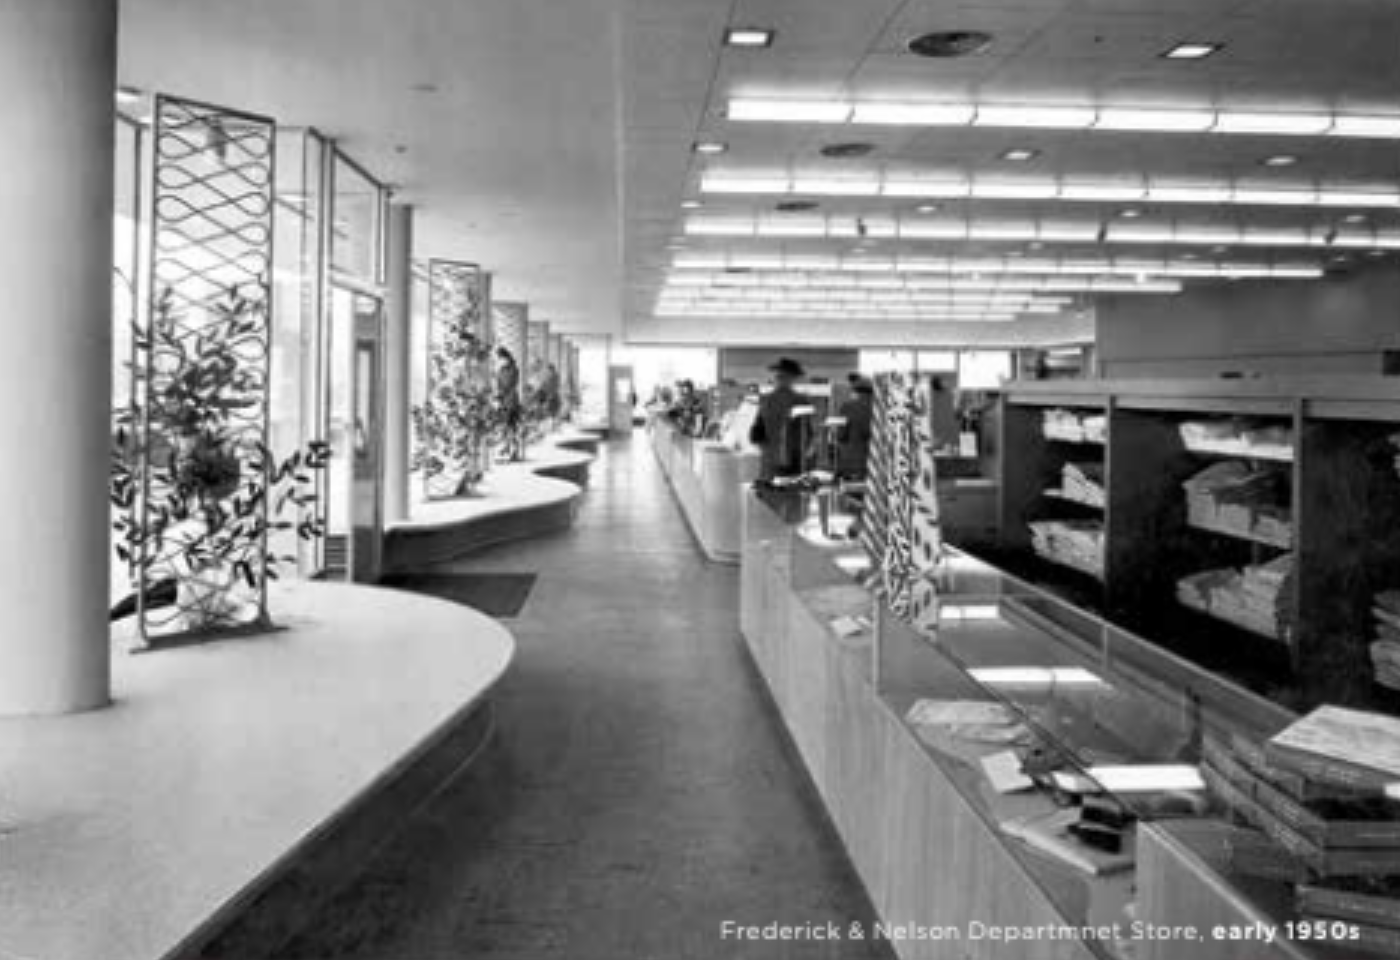 Fredrick & Nelson's Department Store in the early 1950s in Bellevue